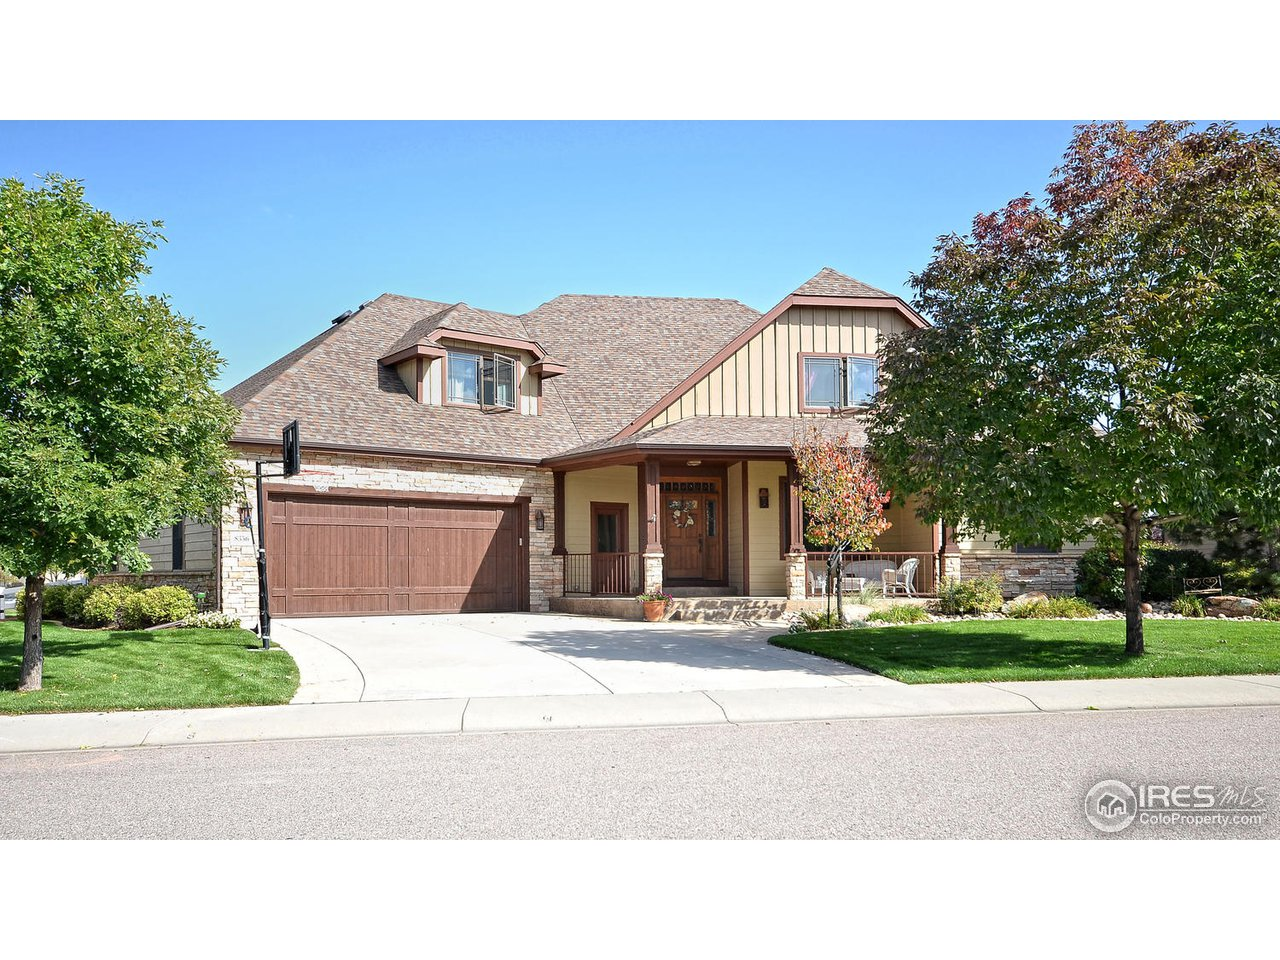 8356 Stay Sail Dr, Windsor CO 80528